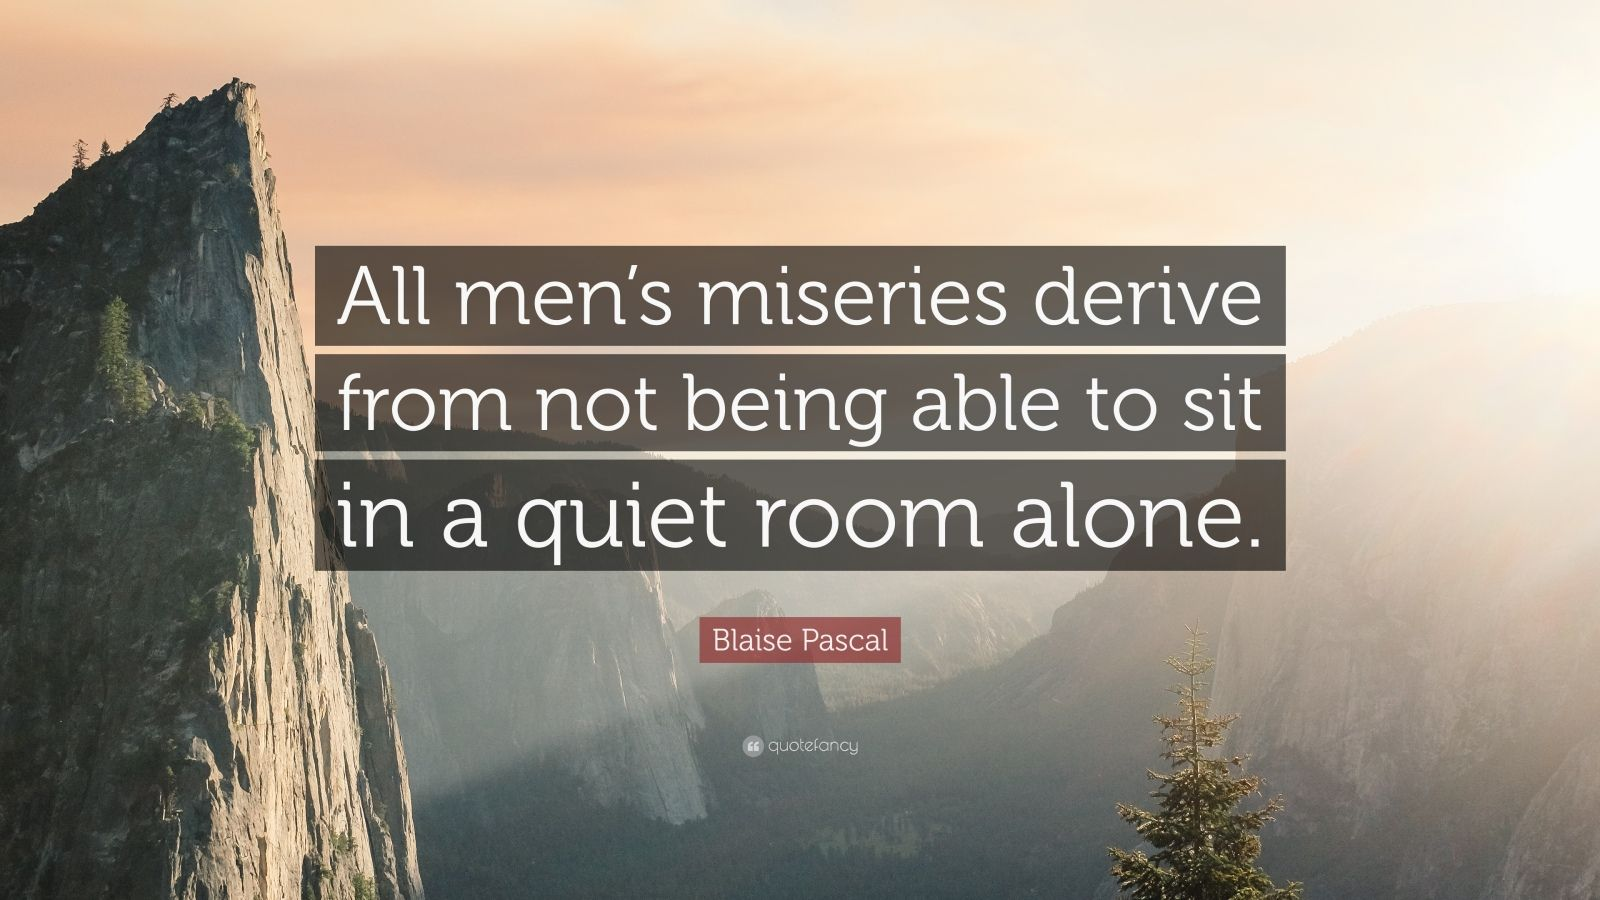 Quote - Blaise Pascal - All mens miseries derive from not being able to sit in a quiet room alone